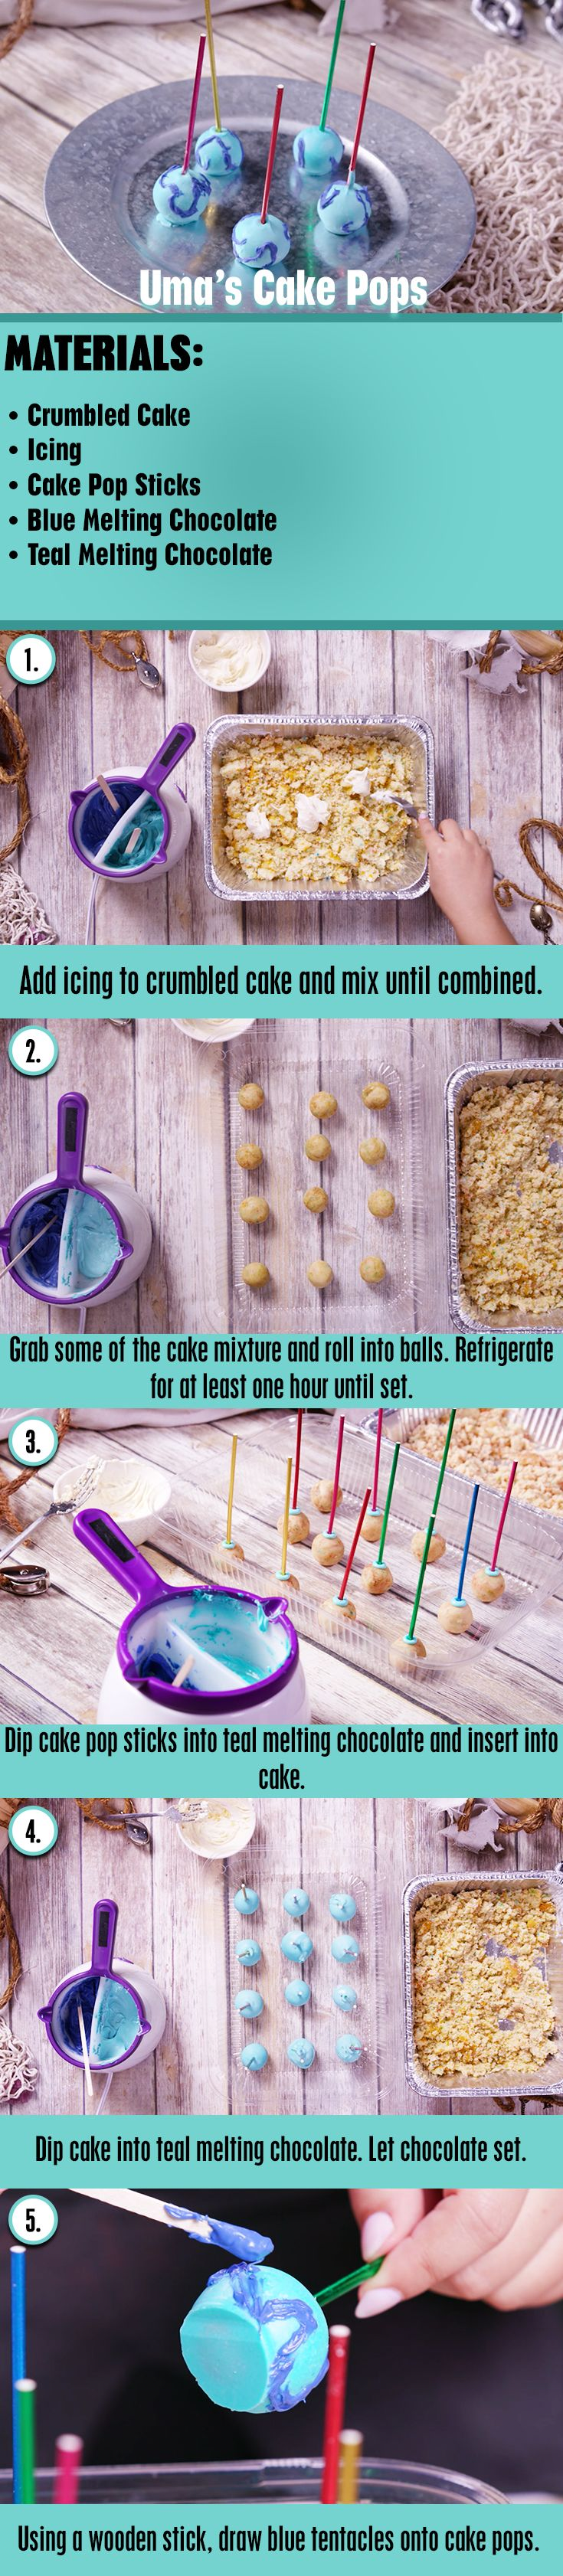 Descendants 2 Uma's Cake Pops DIY   Here's a quick and easy way to make Cake Pops inspired by Uma from Descendants 2!